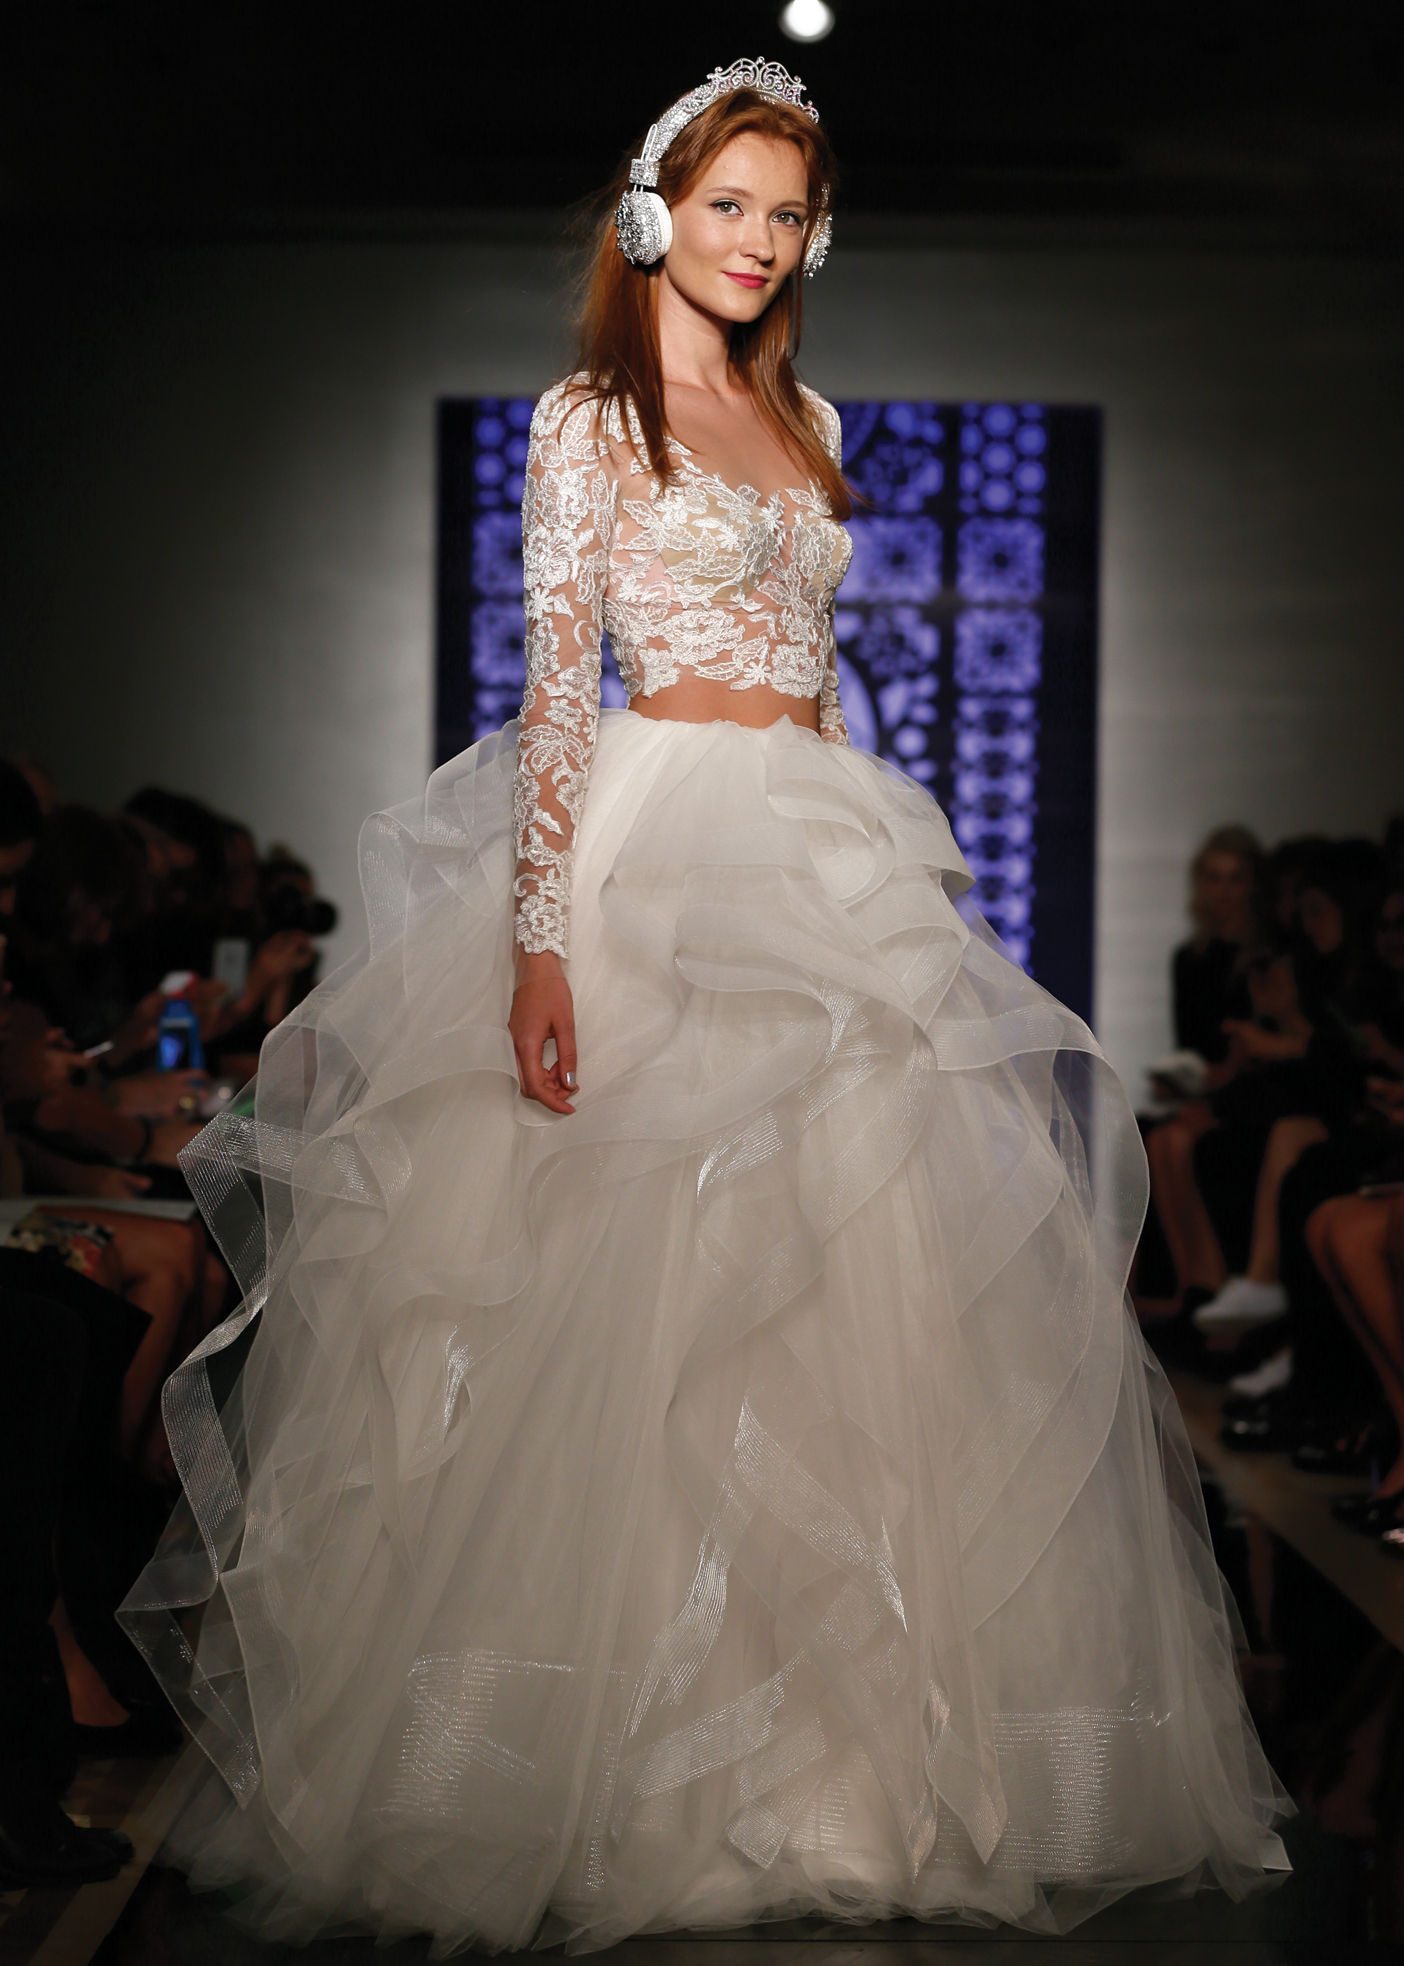 Bridal Top and Skirt Wedding Gown by Reem Acra NY, NJ